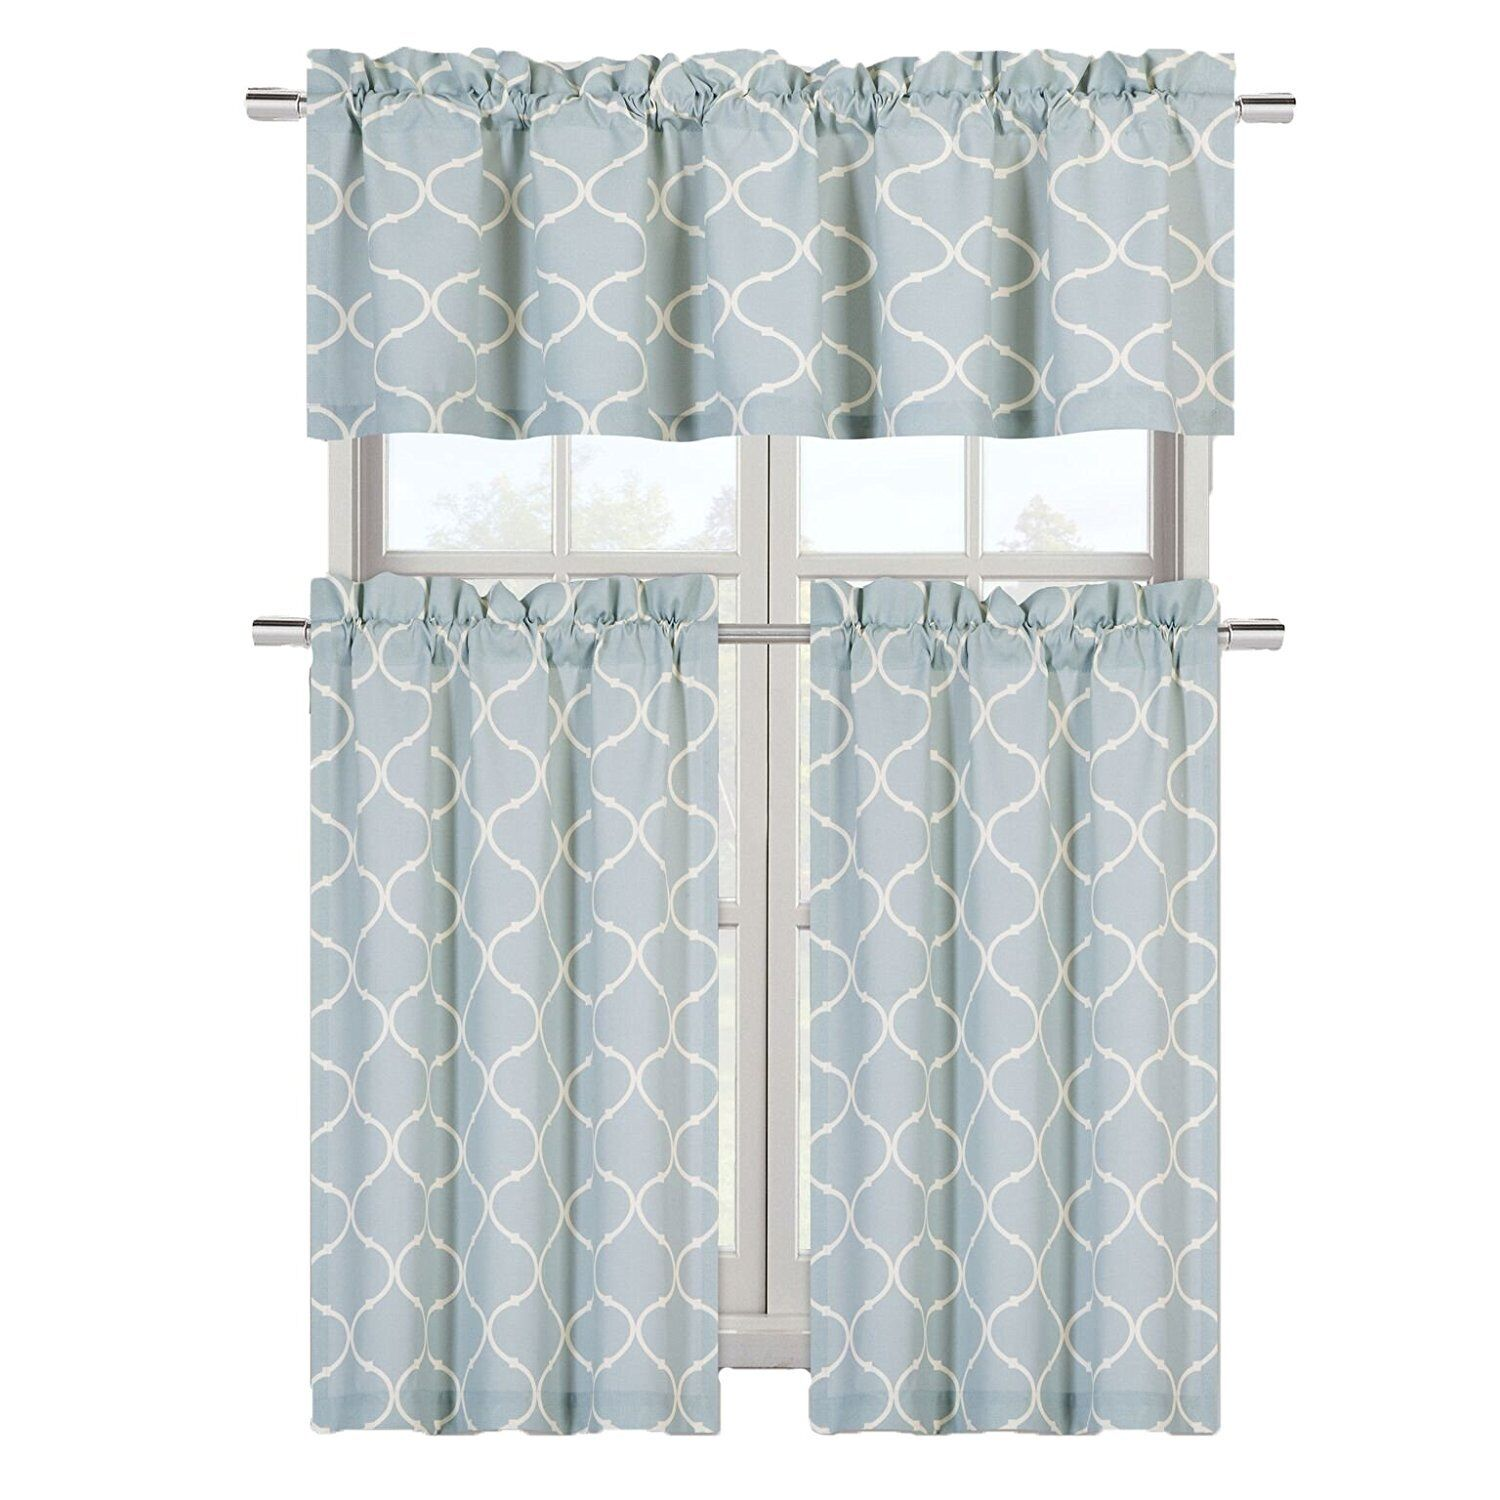 Details About Luxurious Turquoise Geometric Shabby 3 Piece Kitchen Curtain Tier Valance Set